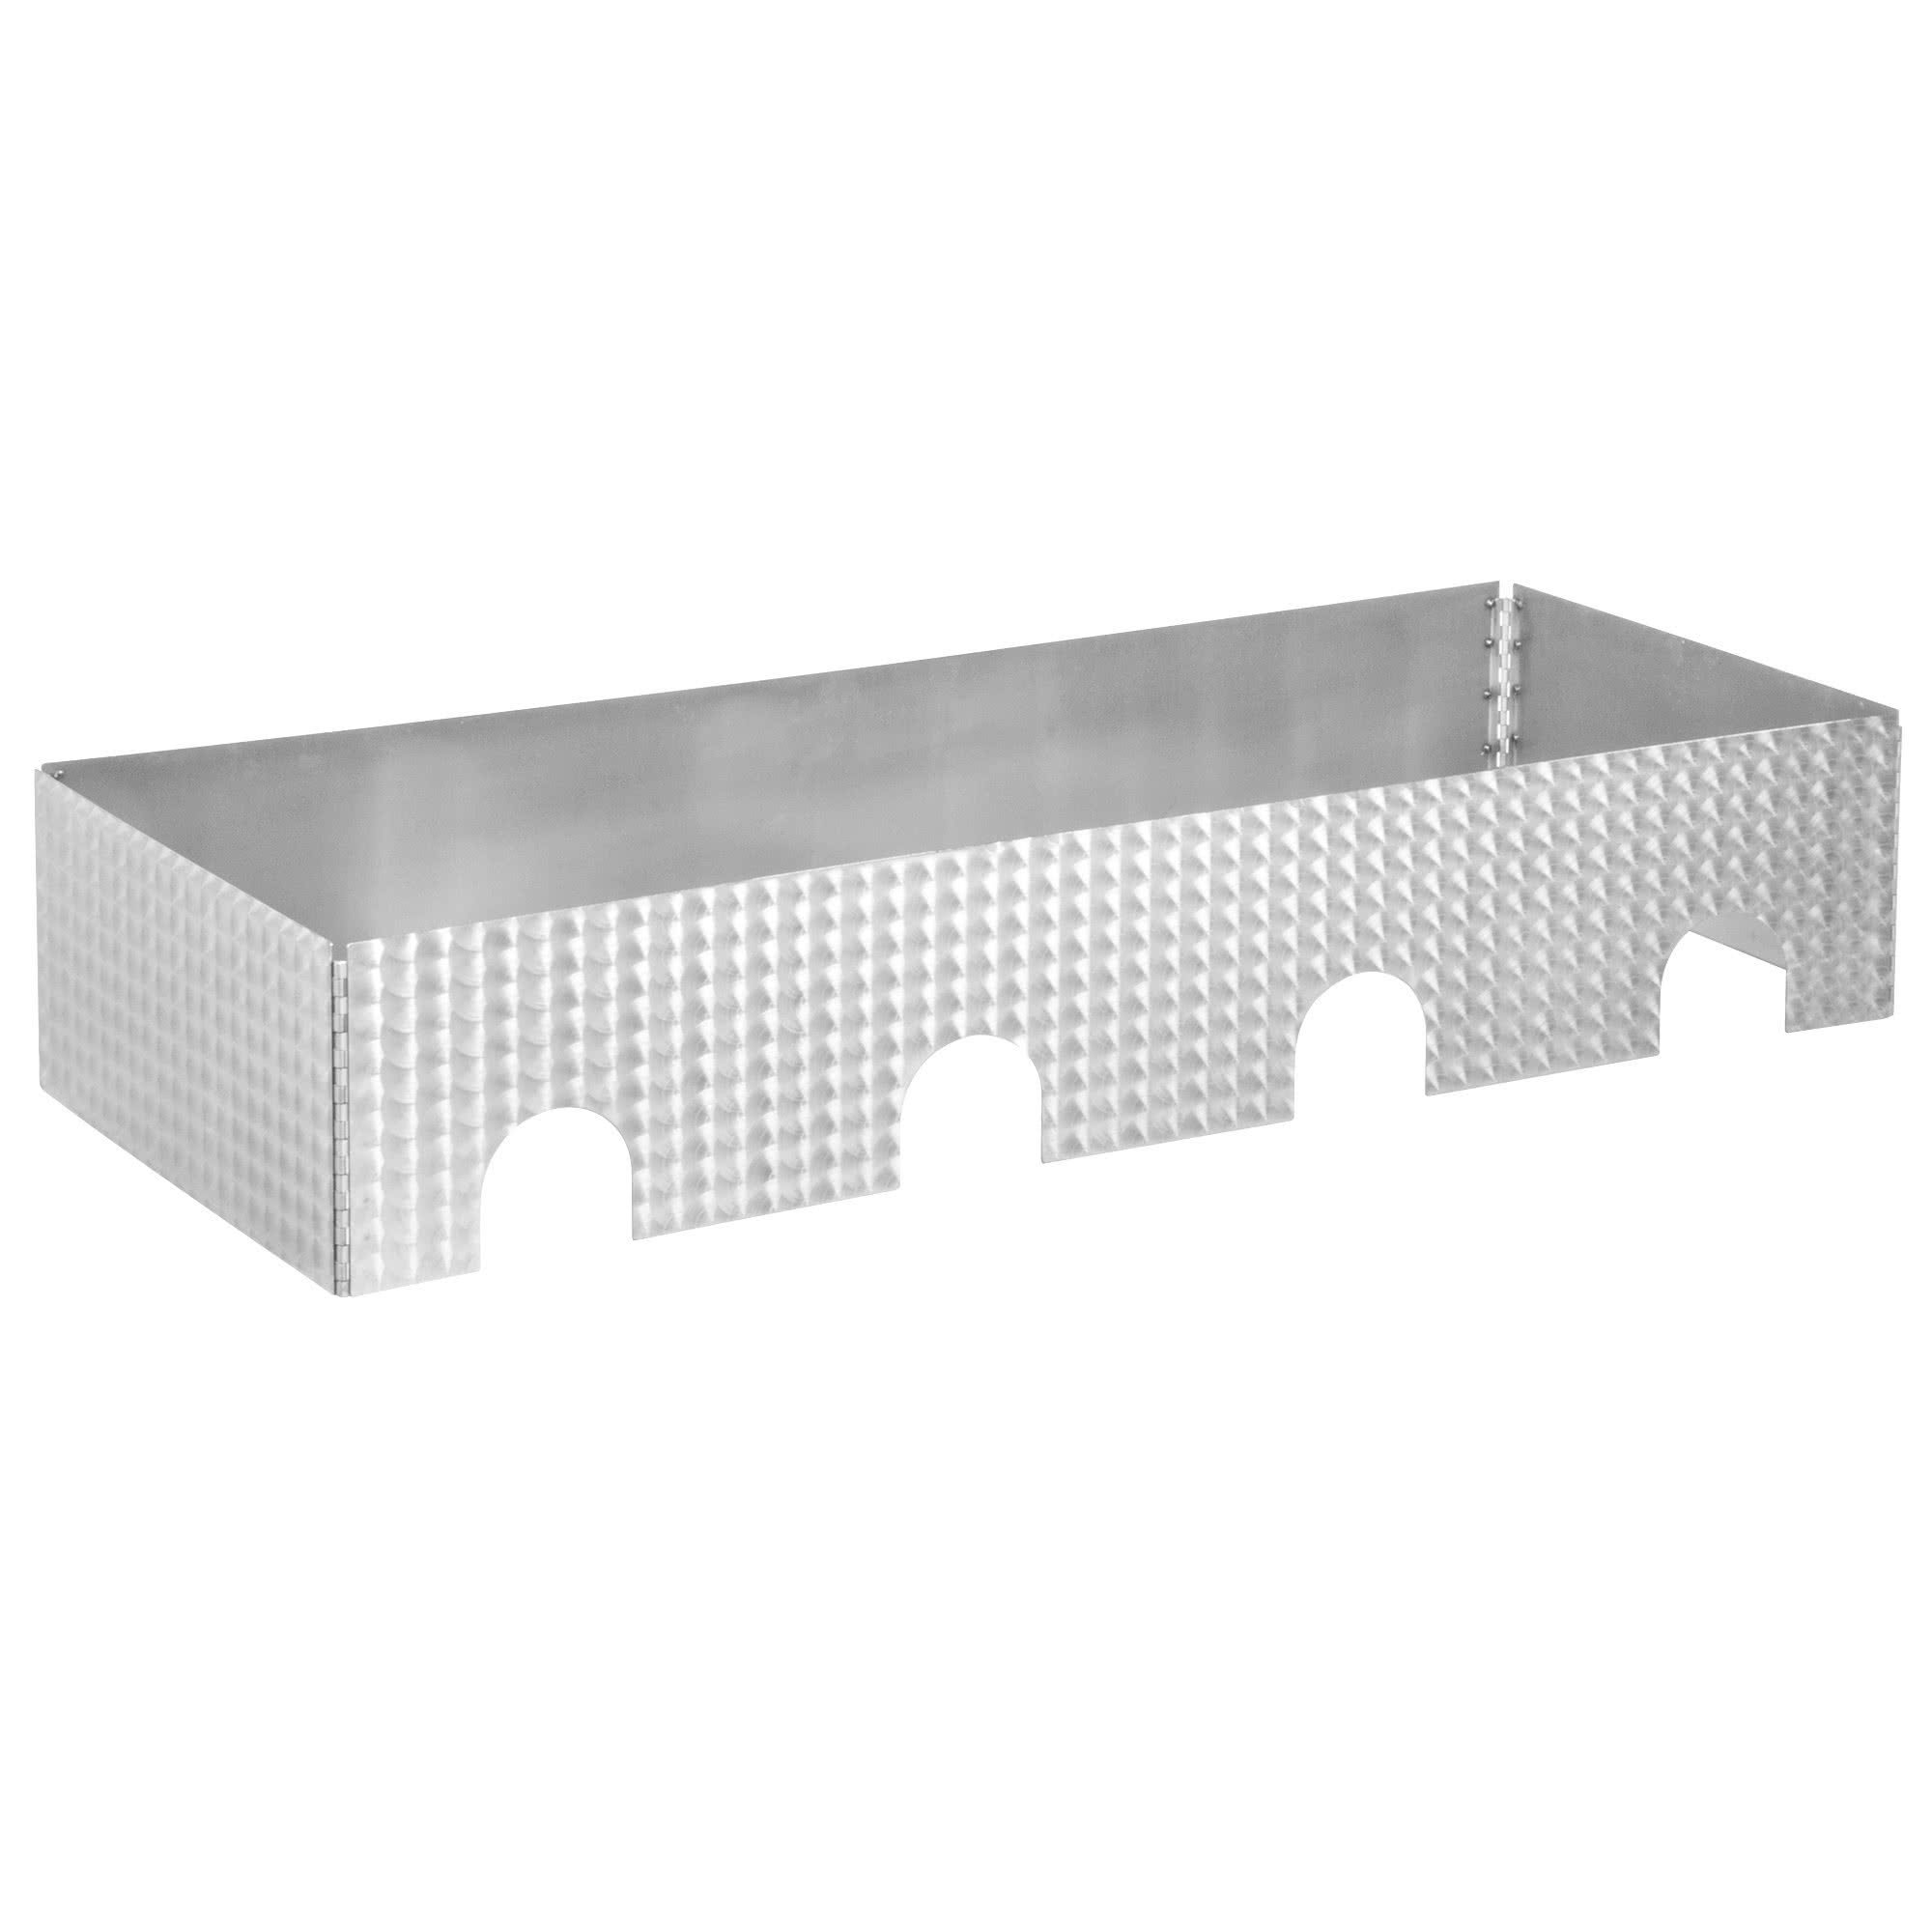 TableTop king Caterware CW604CSS 4-Well Collapsible 16 Gauge Circle Swirl Stainless Steel Server - 51 1/2'' x 20 1/2'' x 10''